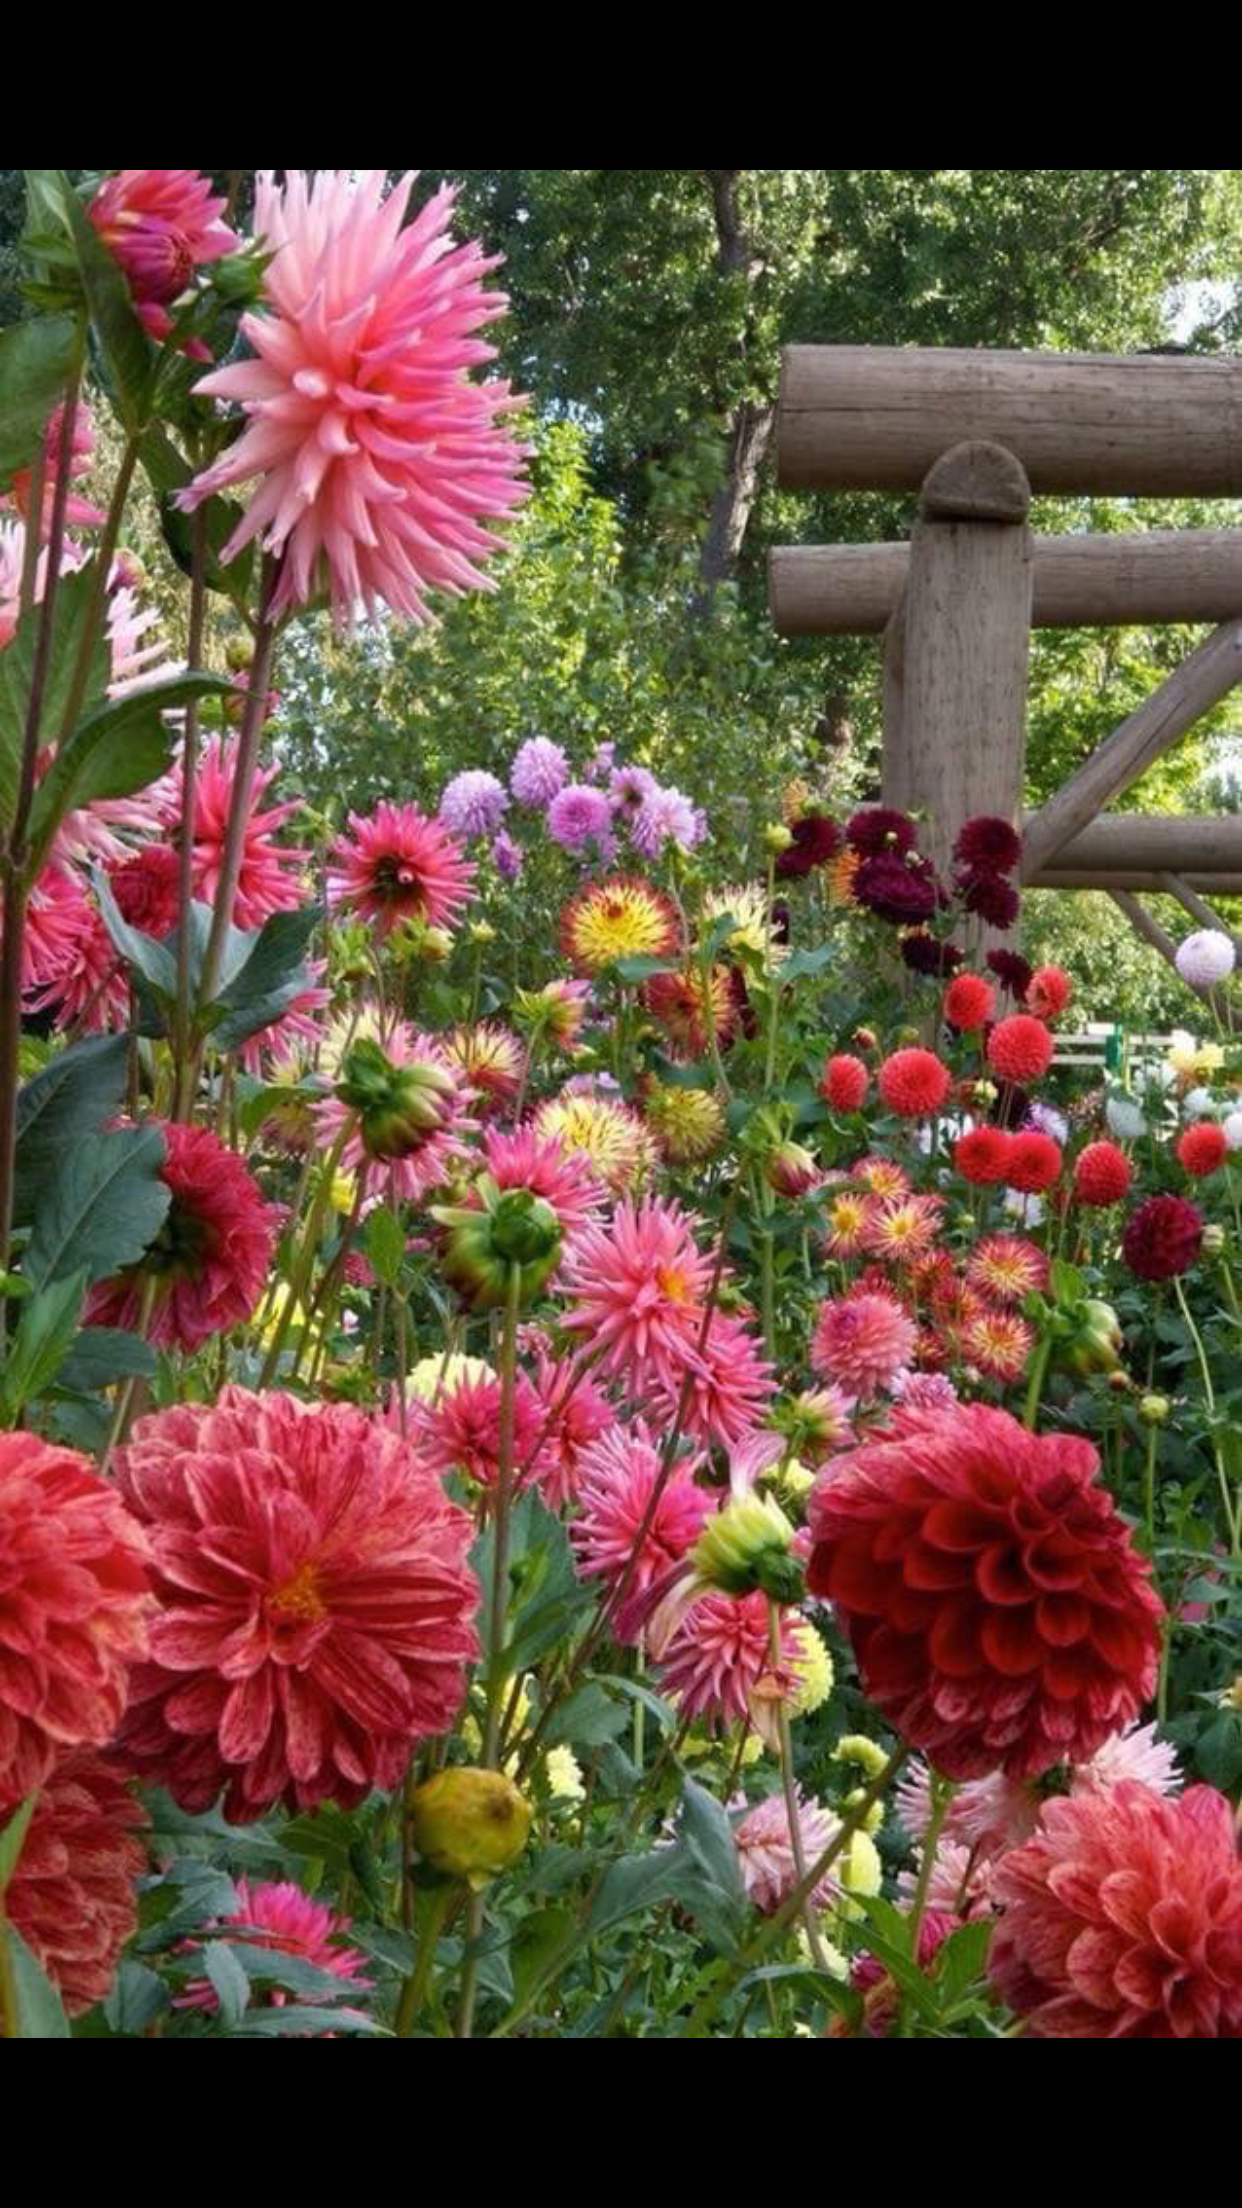 pin by pam stamper on wallpapers | garden, flowers, backyard